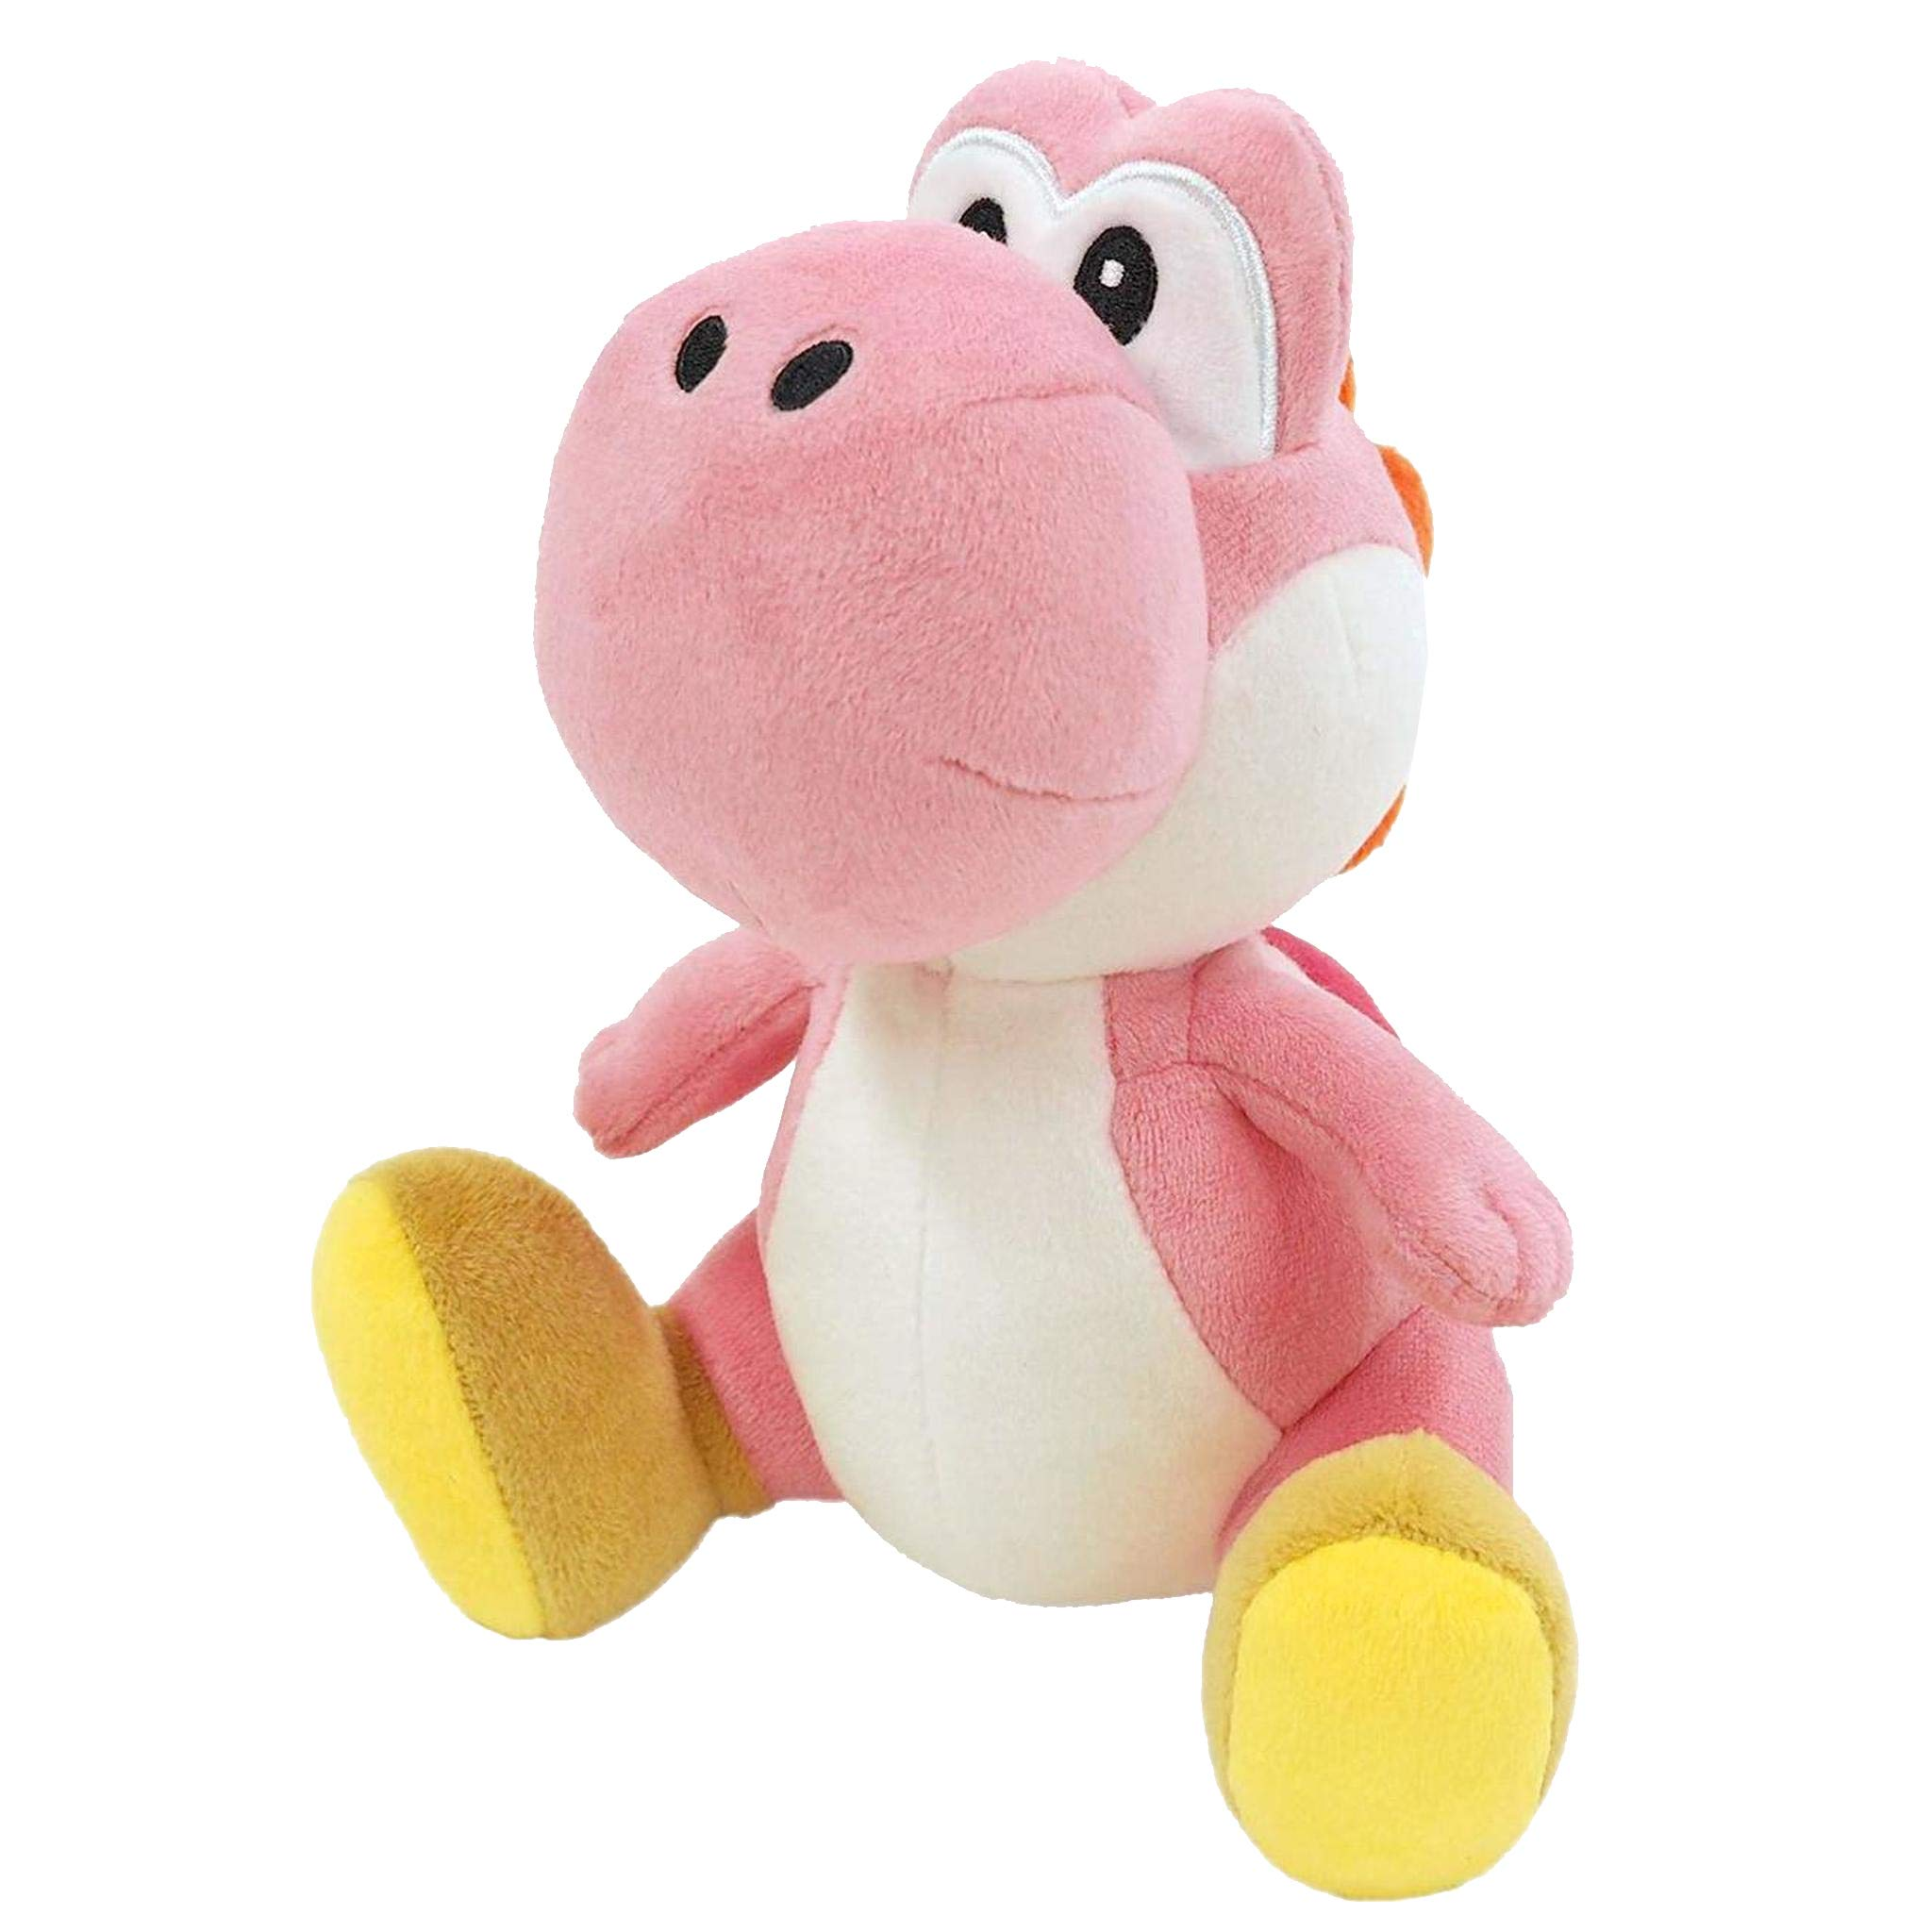 Little Buddy 1218 Super Mario All Star Collection Pink Yoshi Plush, 7'' by Nintendo